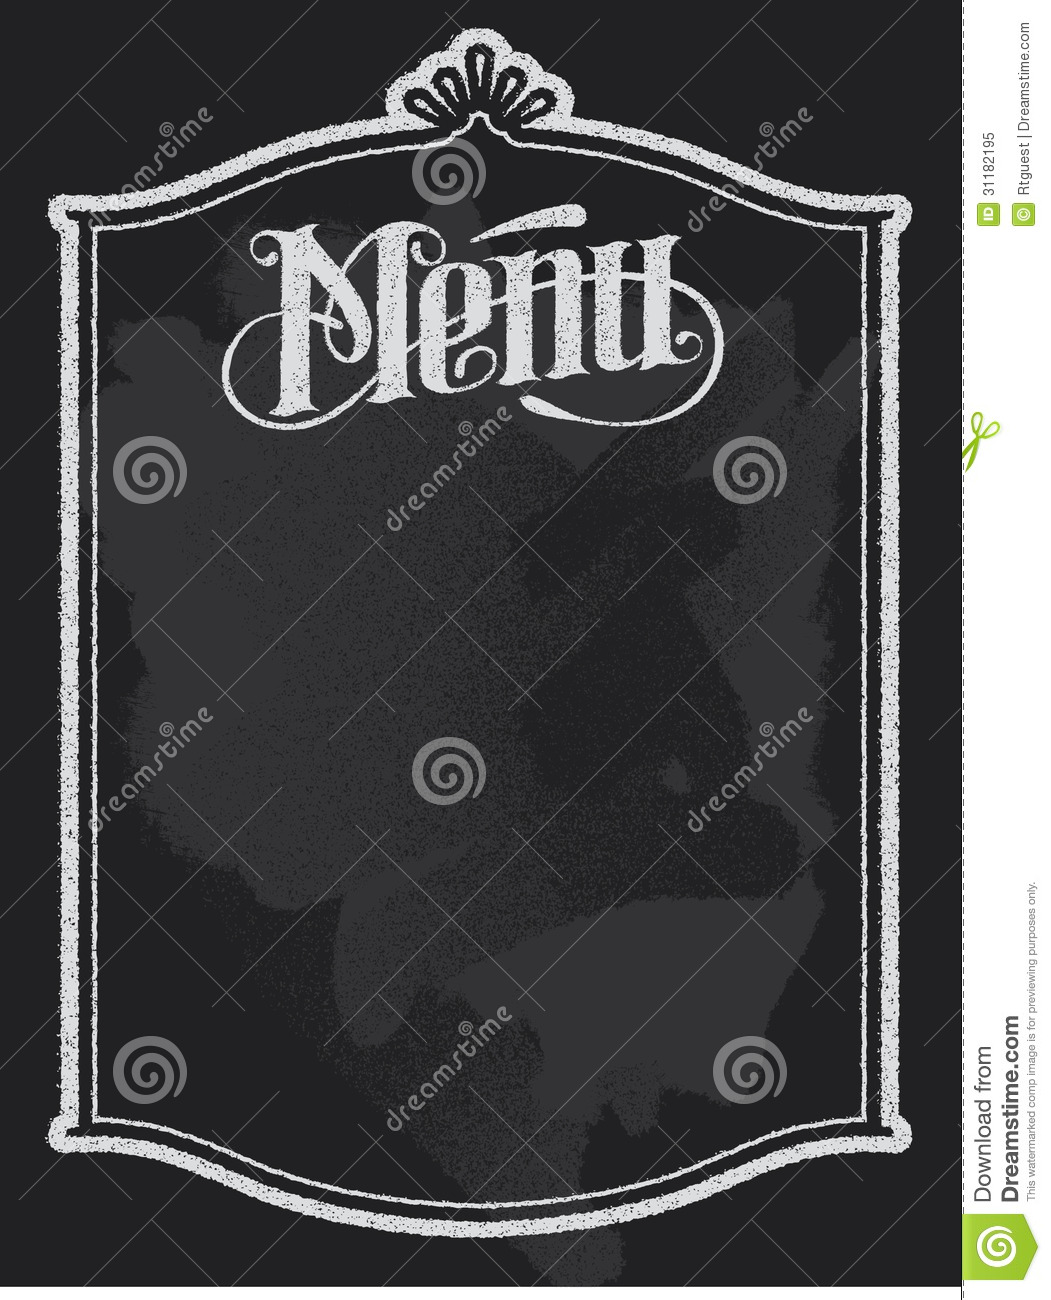 Chalkboard Menu Royalty Free Stock Photo - Image: 31182195 Vintage Border Vector